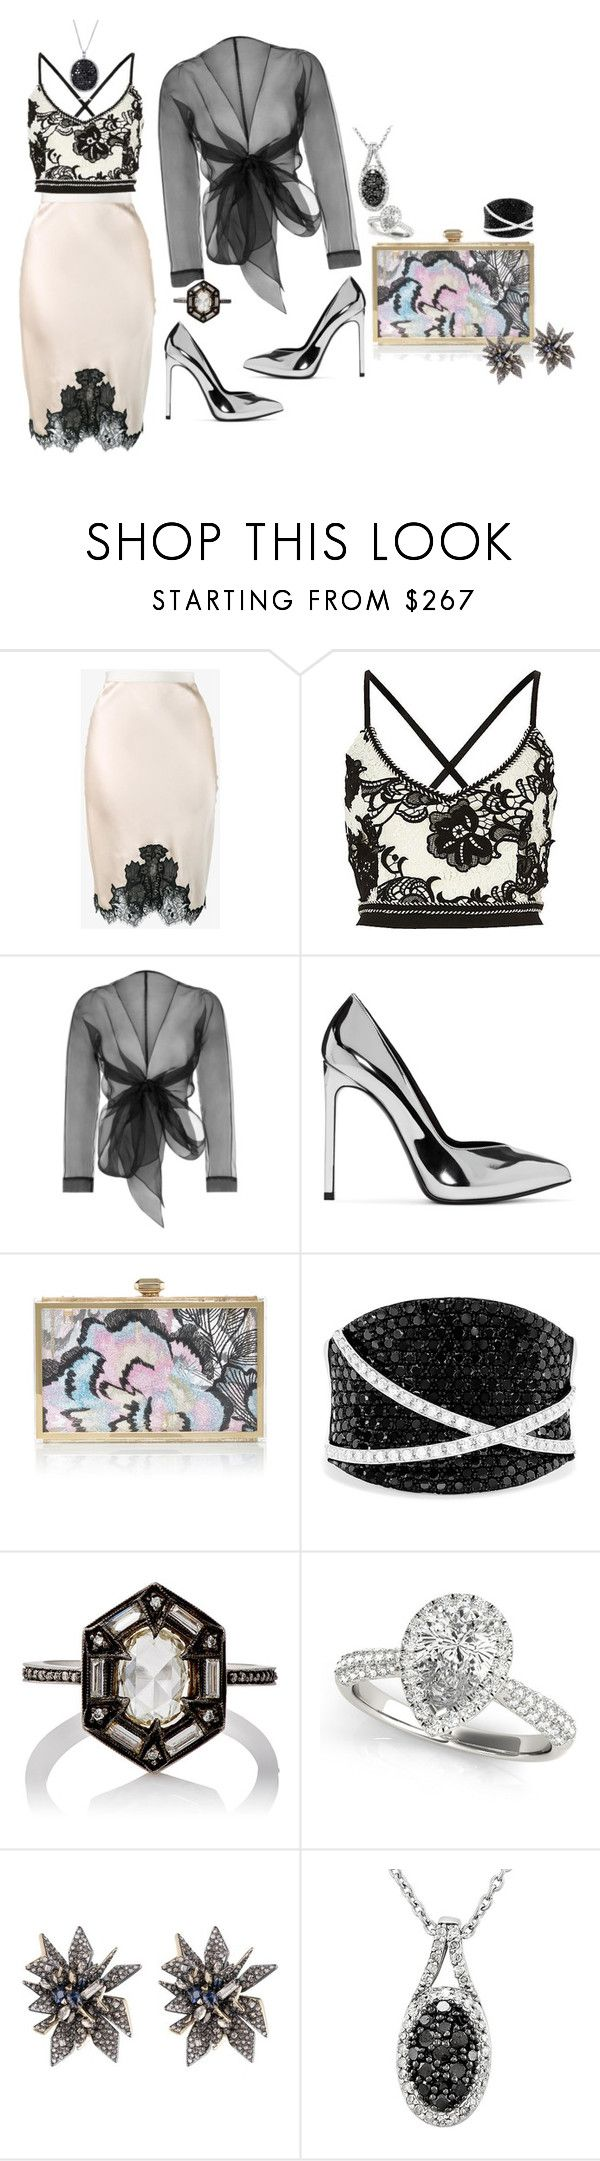 """""""I love it when he shows me off to his friends"""" by blujay1126 ❤ liked on Polyvore featuring Helmut Lang, Bianca Elgar, Yves Saint Laurent, Elie Saab, Effy Jewelry, Cathy Waterman, Allurez and Alexis Bittar"""